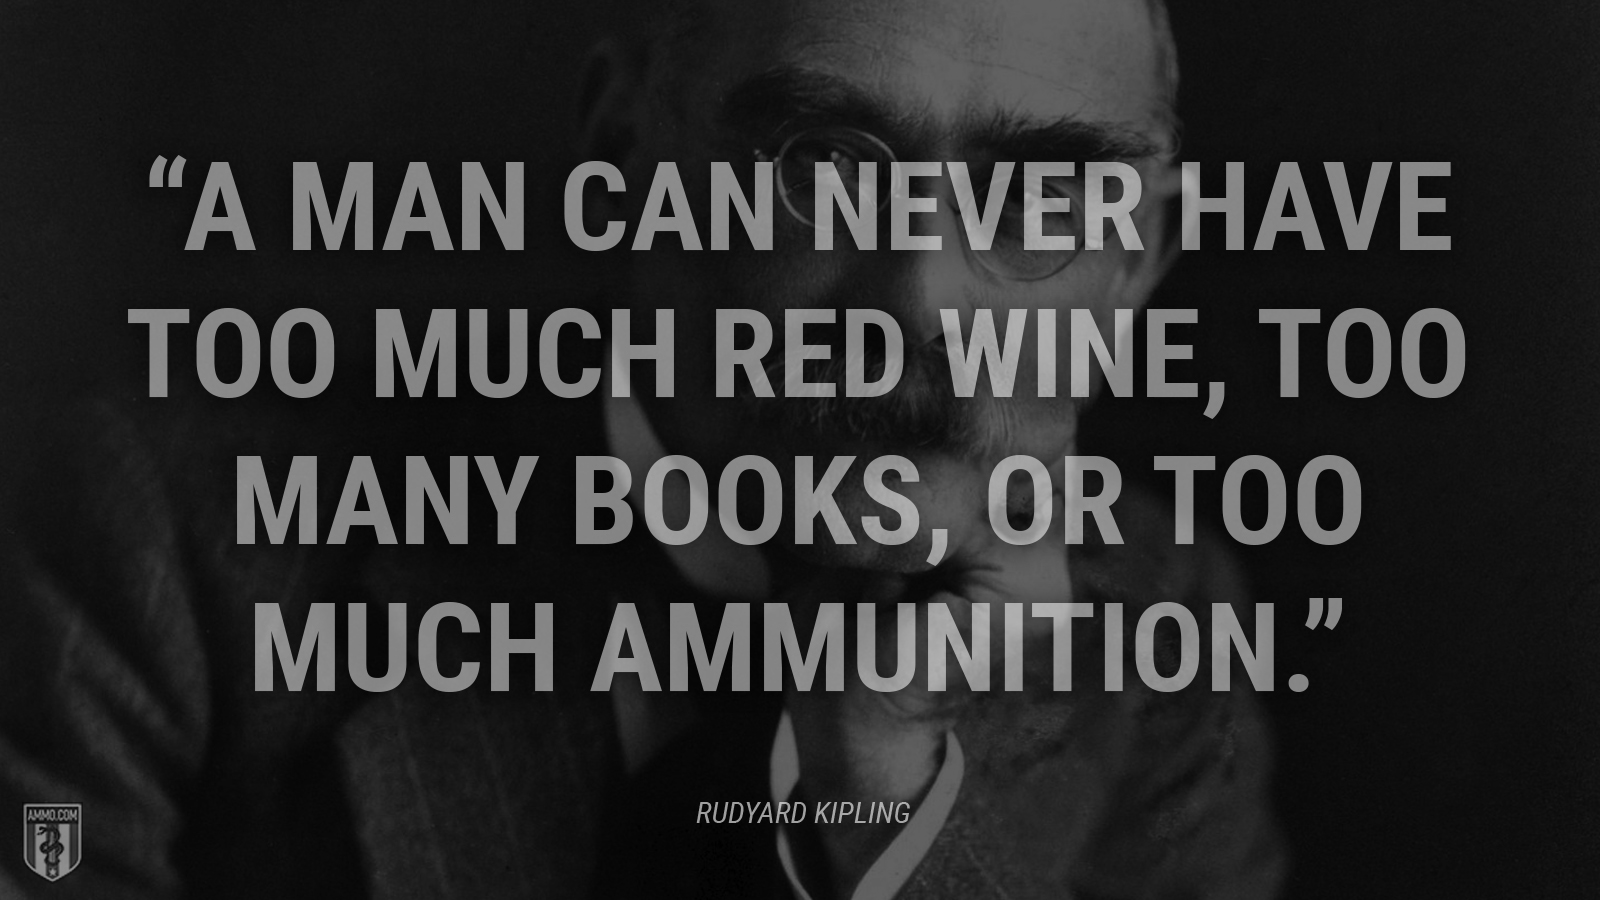 """A man can never have too much red wine, too many books, or too much ammunition."" - Rudyard Kipling"